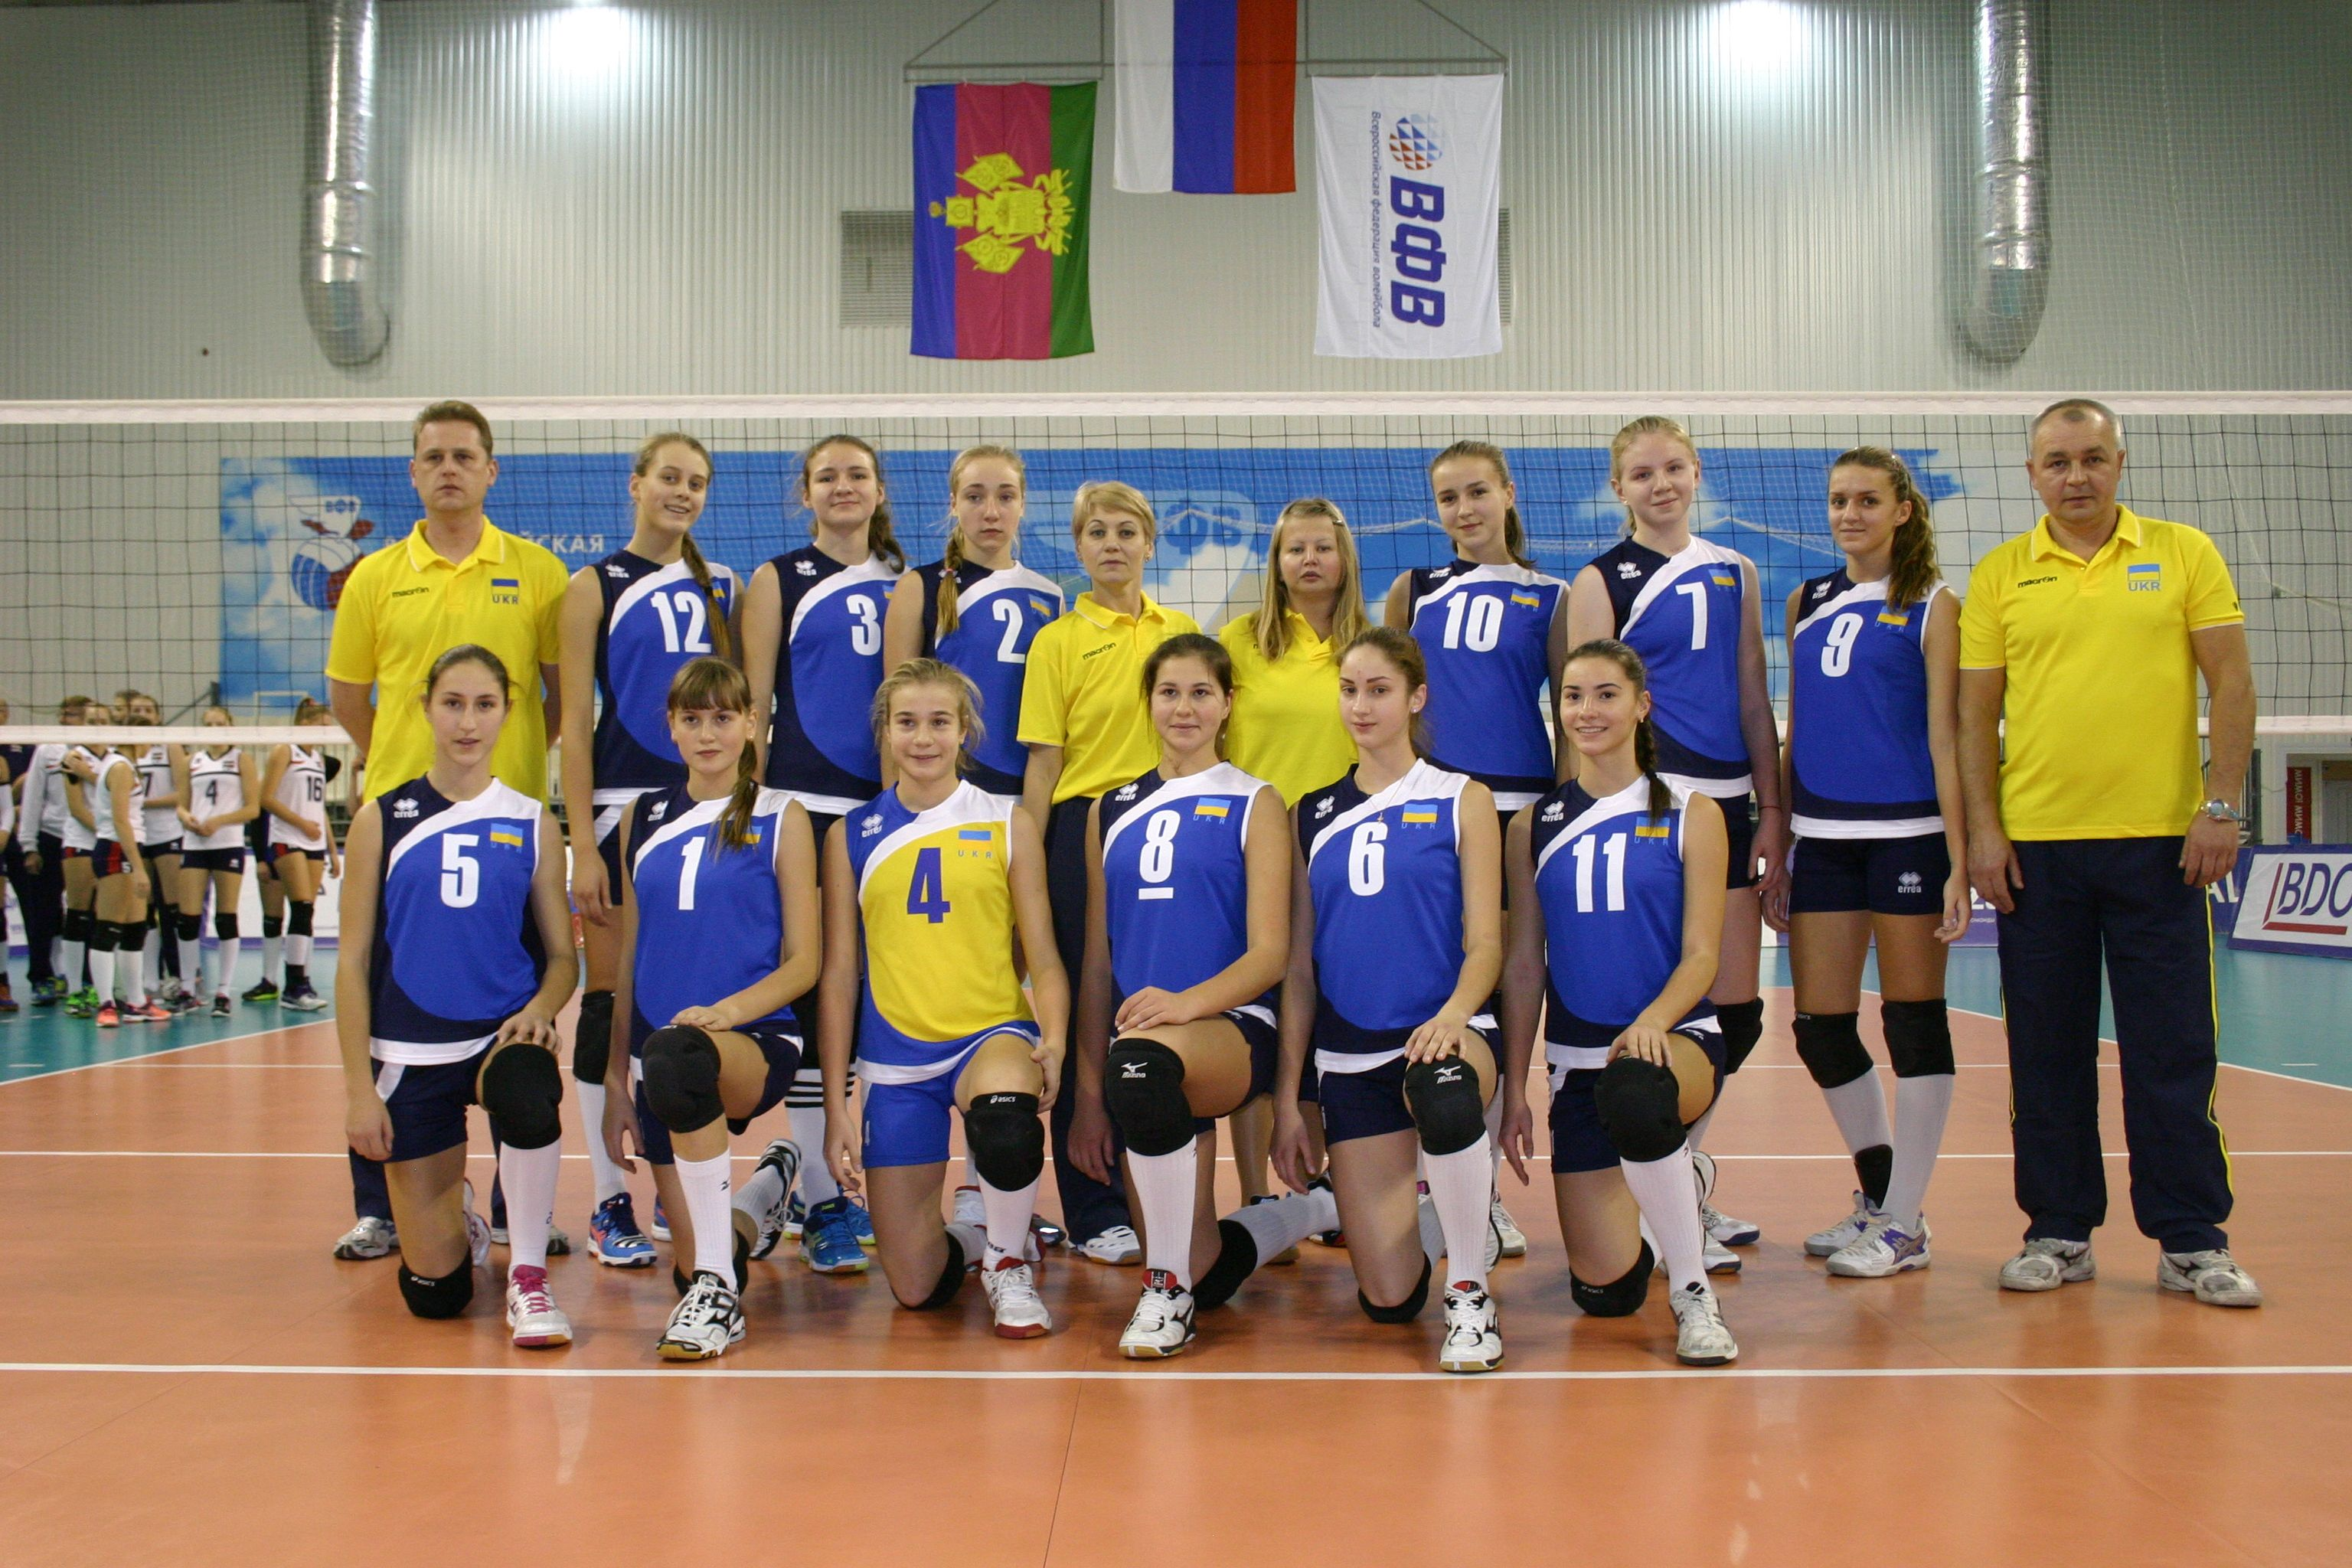 ukr-team-u16-2016.jpg (837.11 Kb)